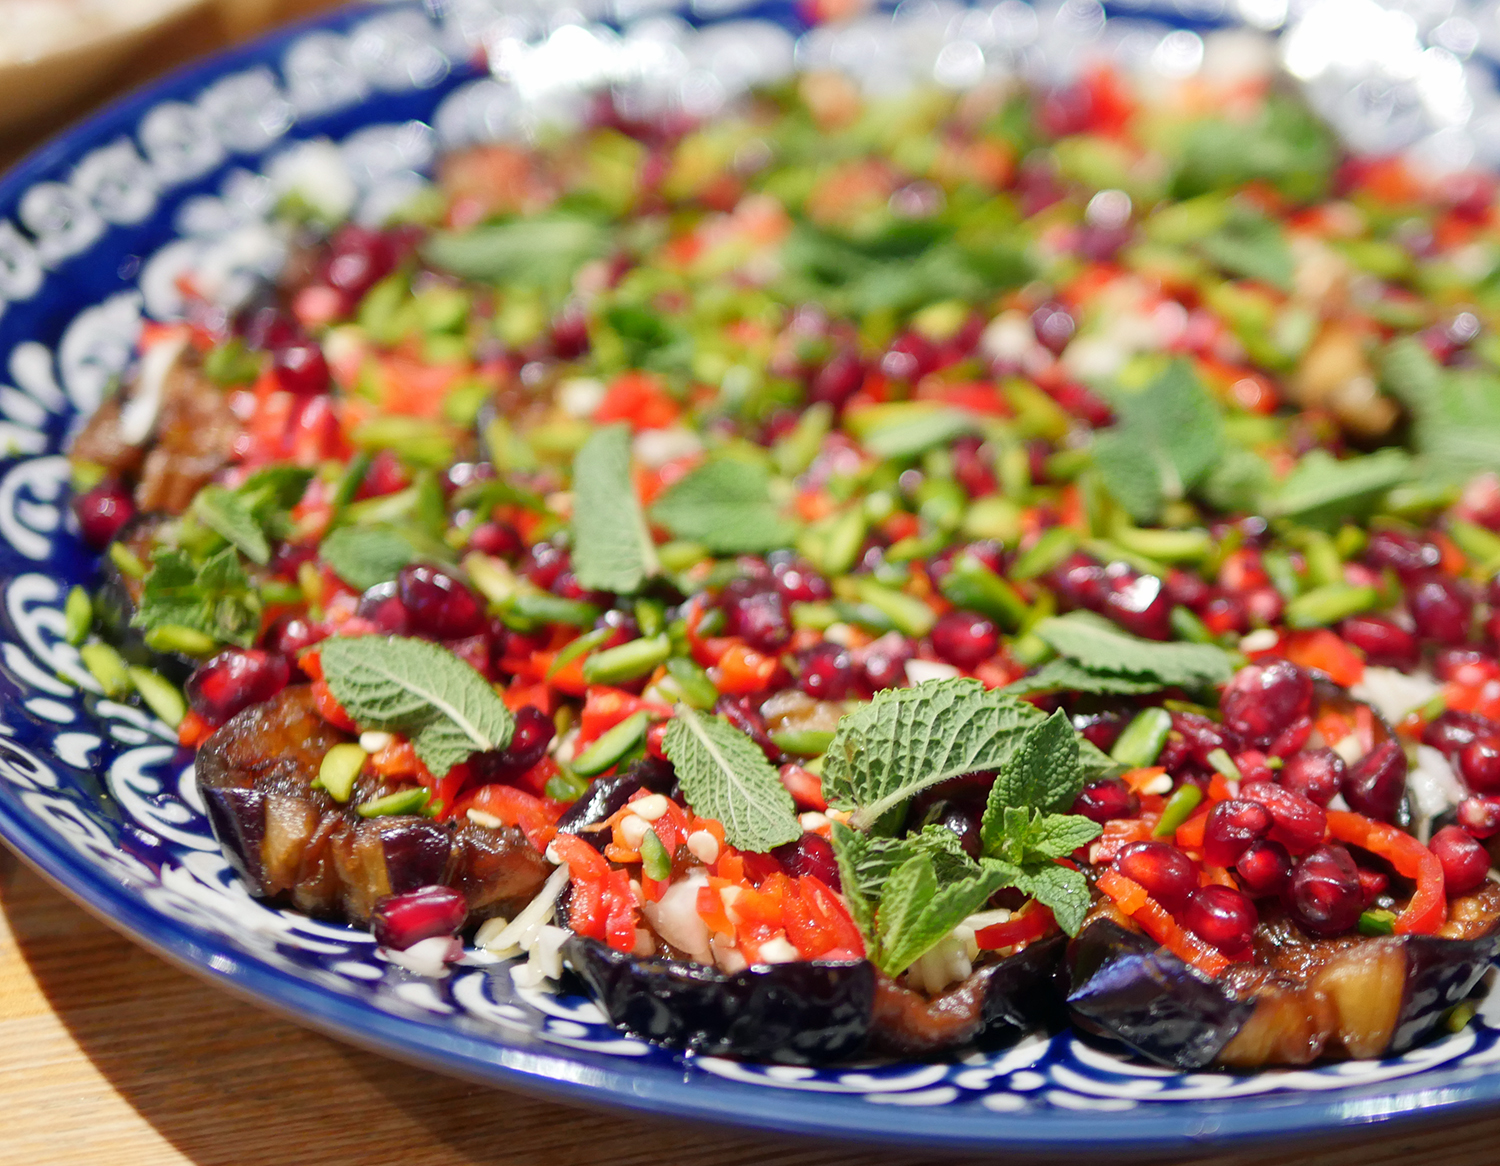 Aubergine and Pomegranate Salad - Yalla Yalla